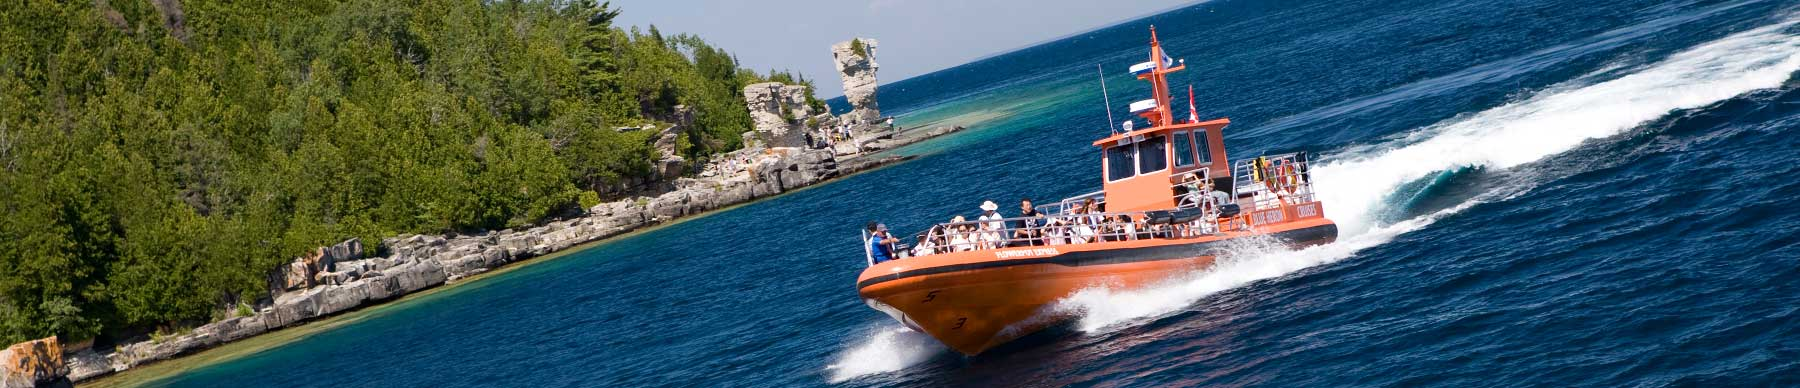 Take a glass bottom or jet boat to flowerpot island!